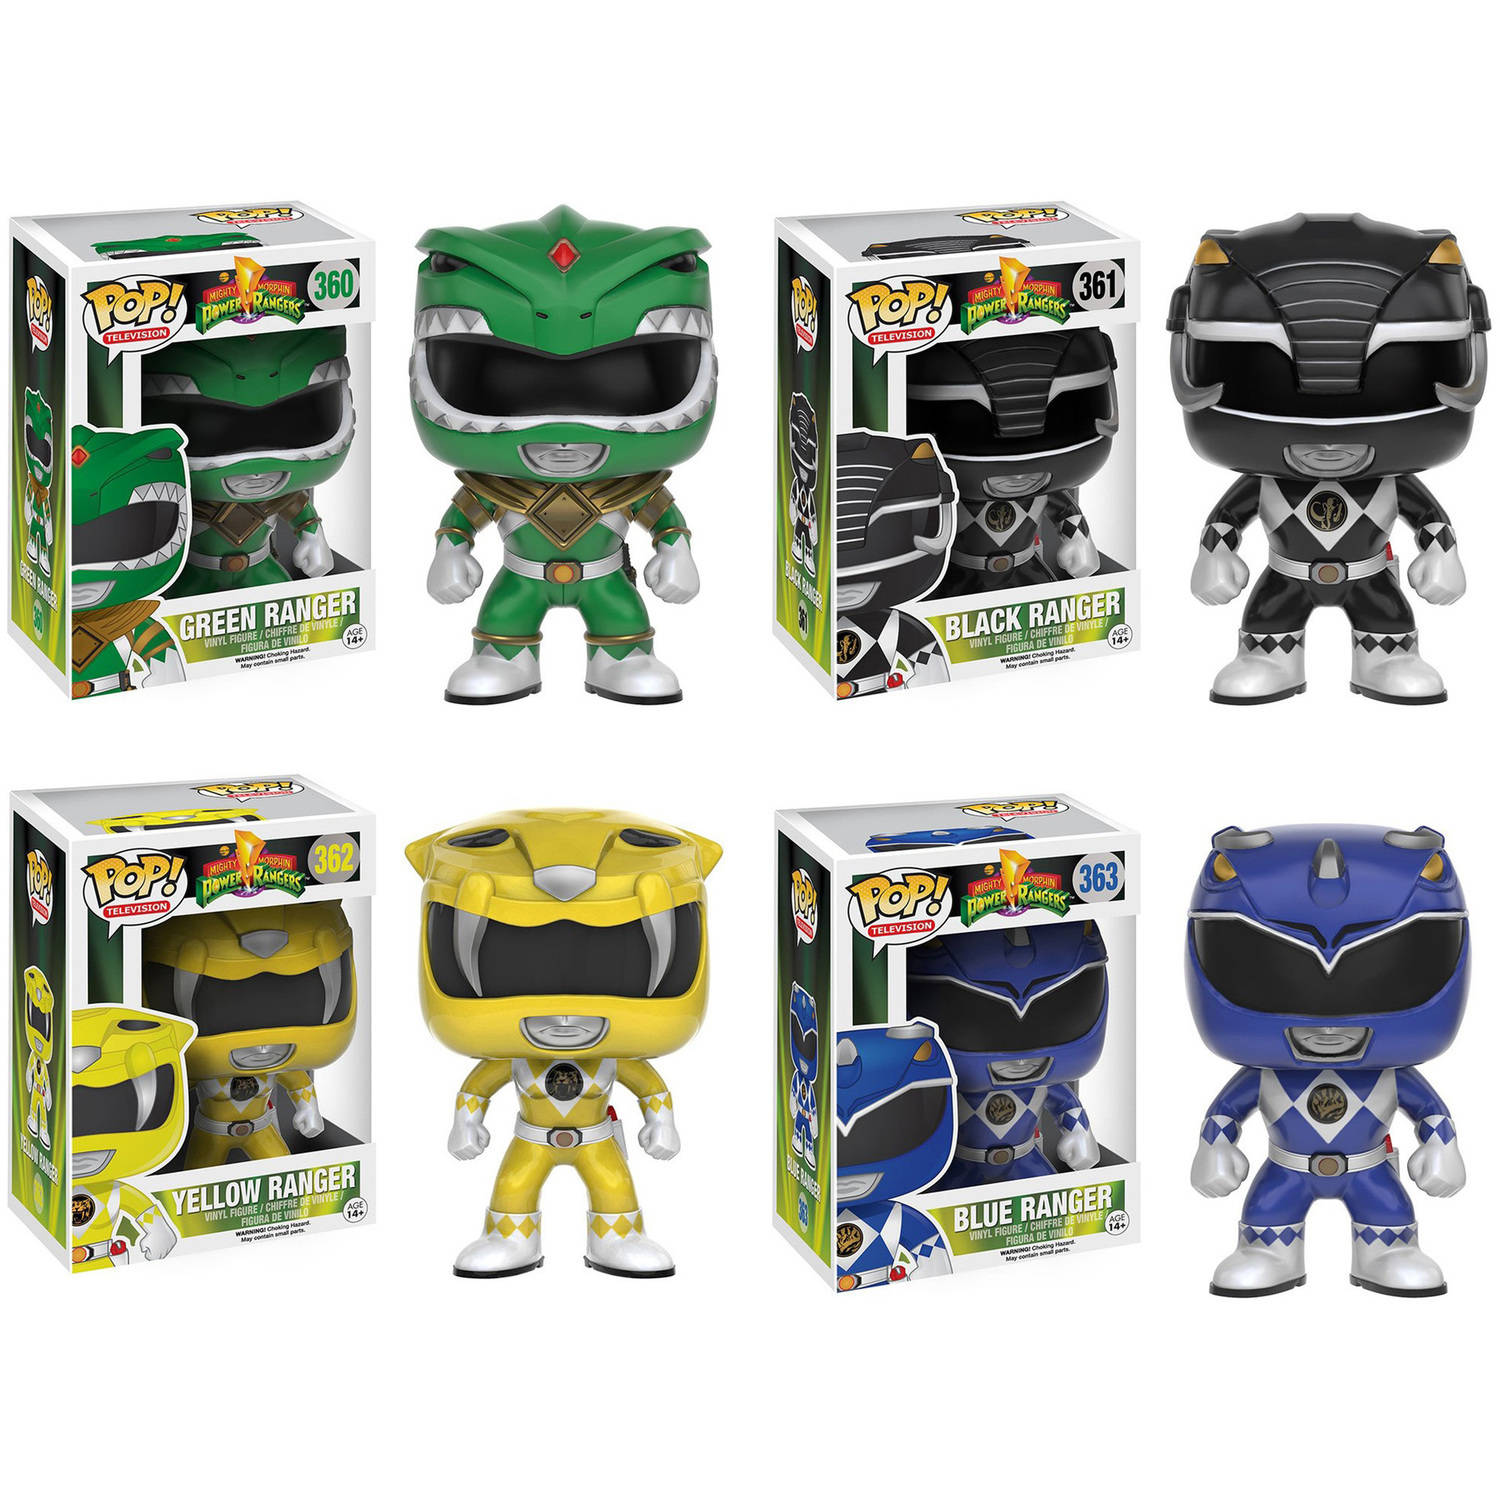 Funko Power Rangers: POP! TV Collector's Set, Green Ranger, Black Ranger, Yellow Ranger, Blue Ranger